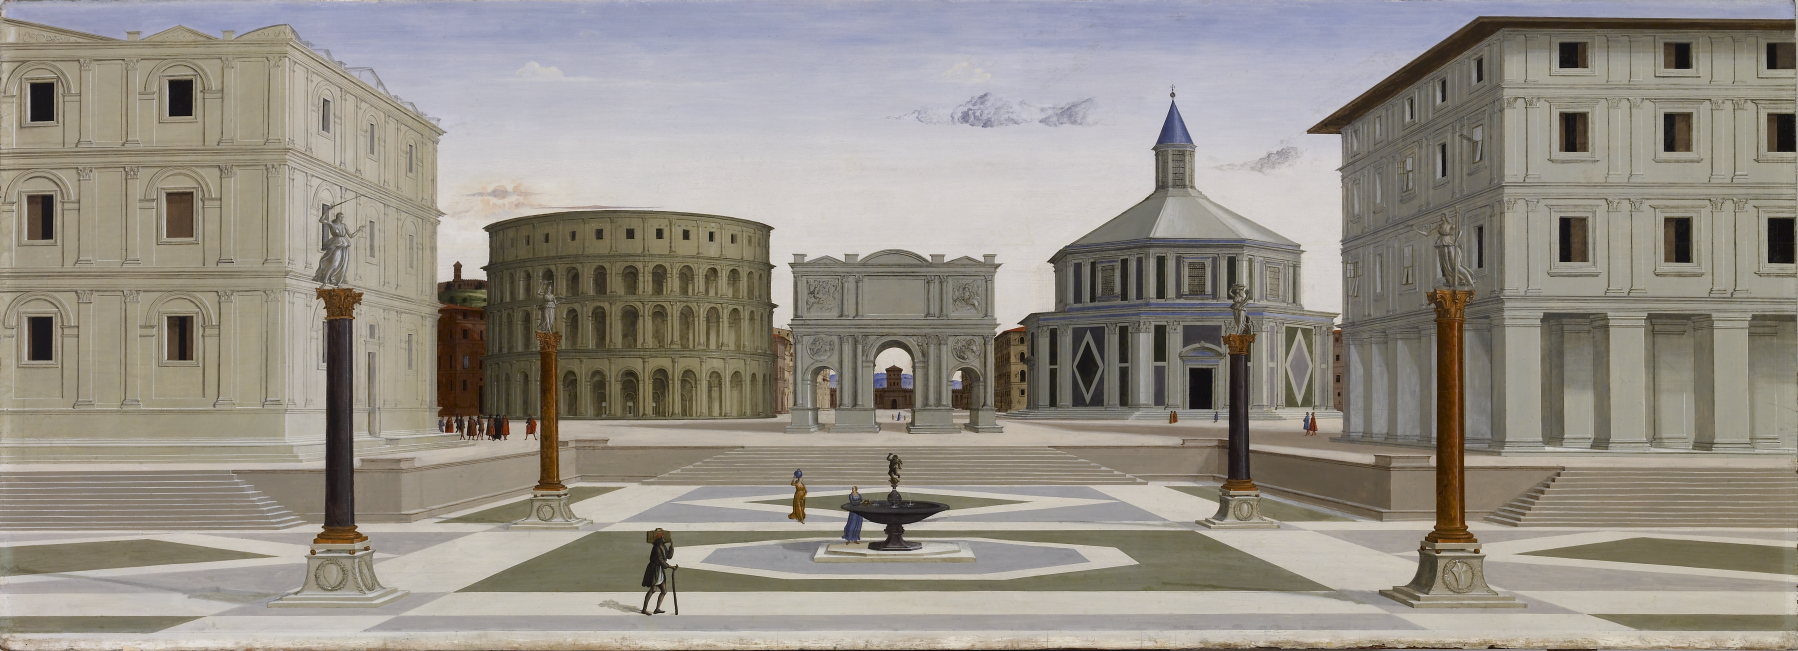 The Ideal City of Baltimore, Fra Carnevale or Leon Battista Alberti, c. 1480-1484.